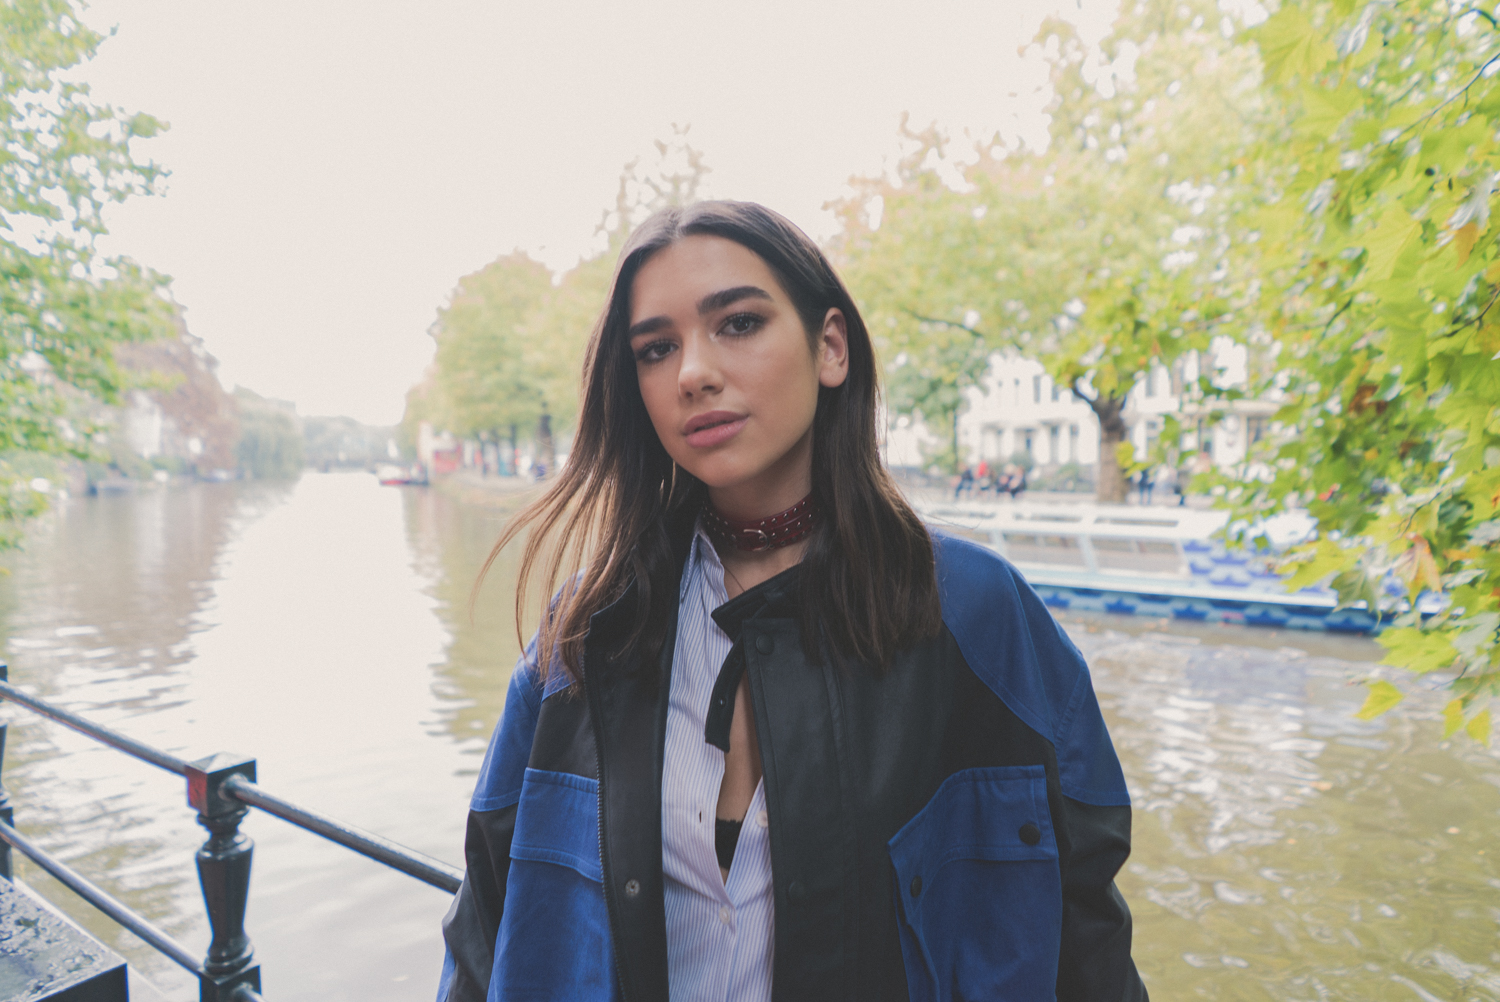 dua-lipa-amsterdam-by-pawel-ptak-1-of-38